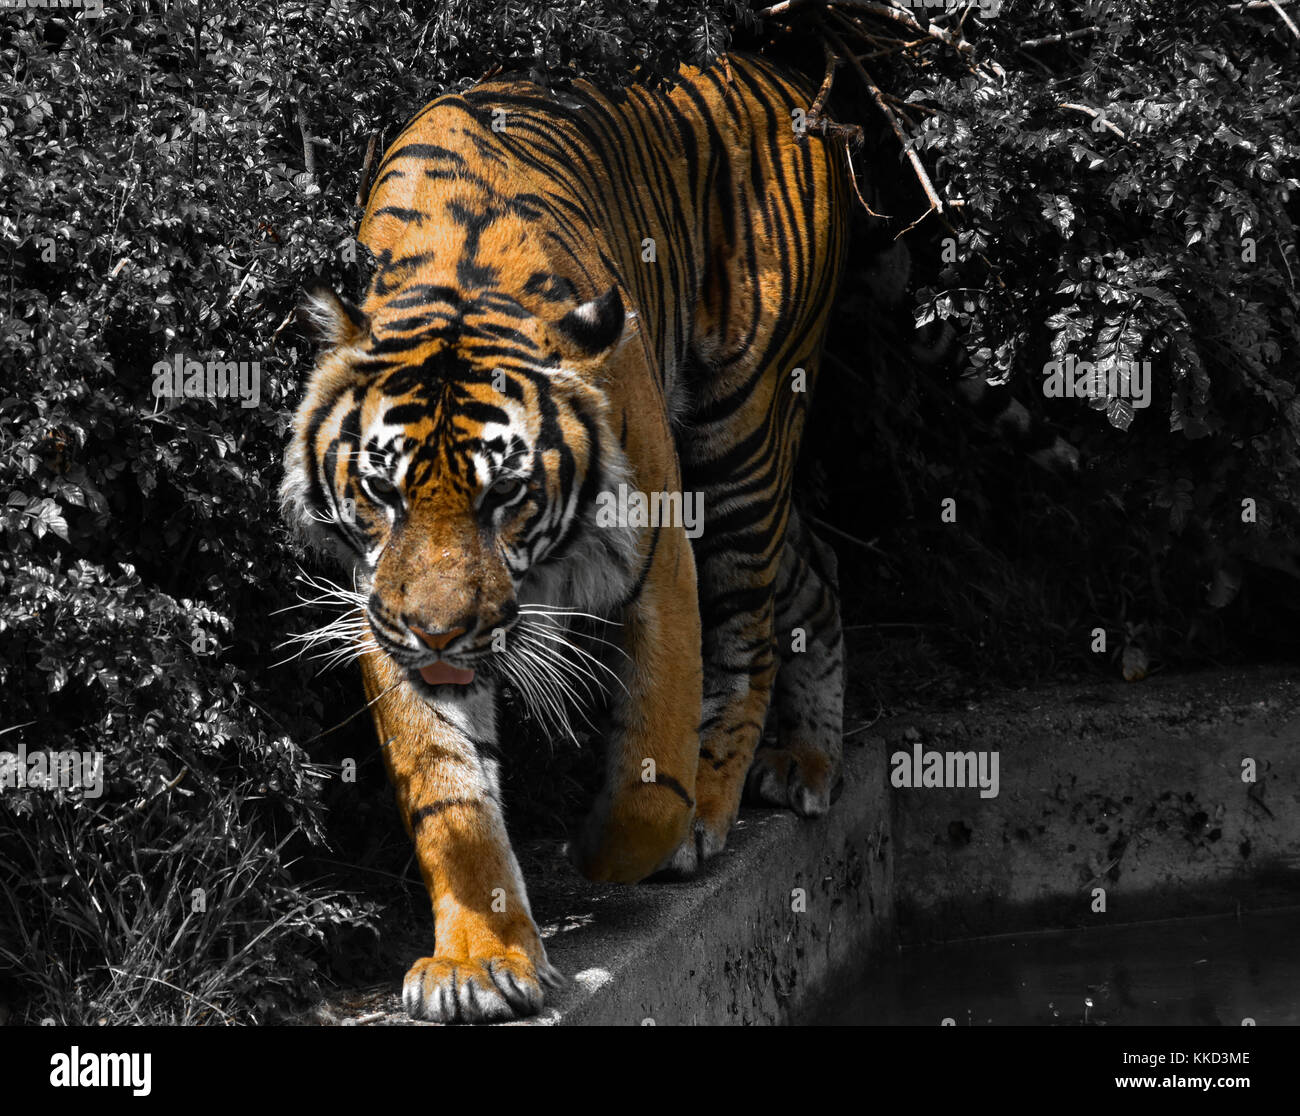 Black, White, and Orange - Stock Image